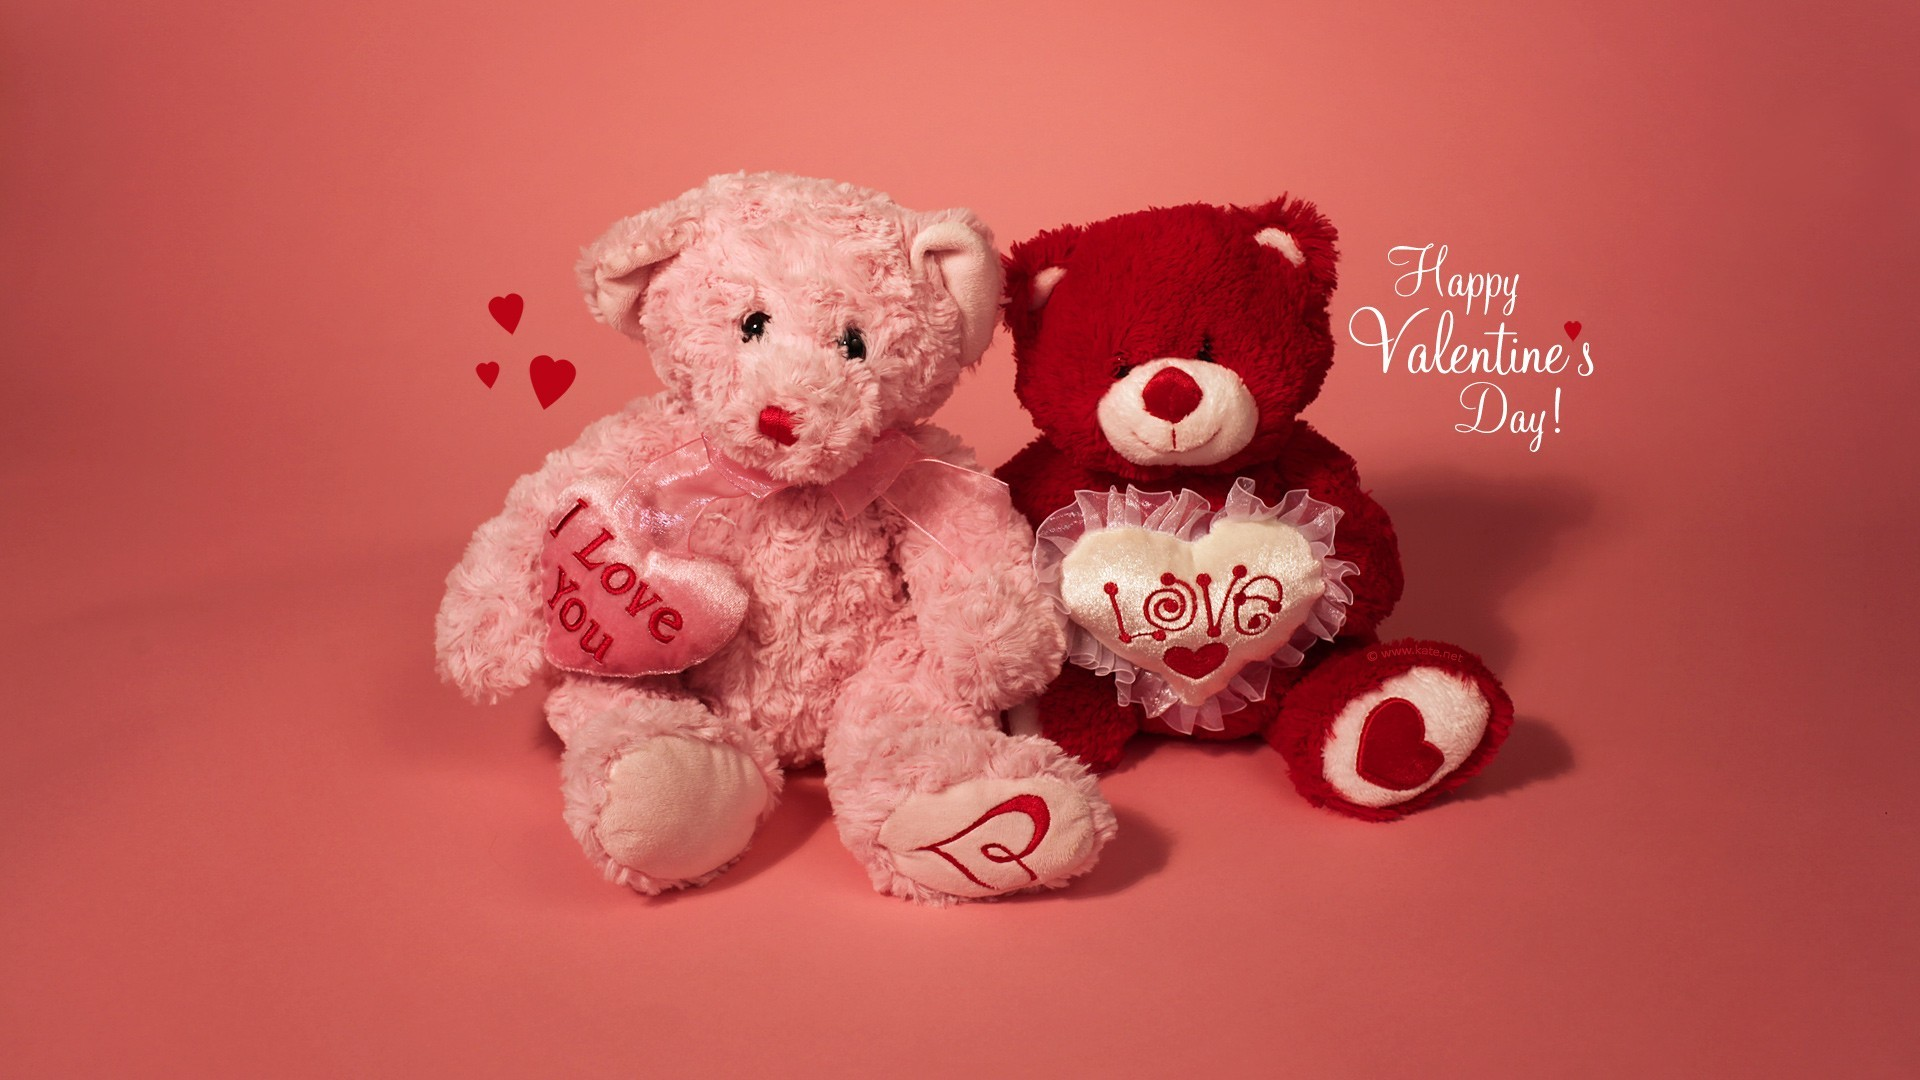 Cute Valentines Day Backgrounds 62 images 1920x1080